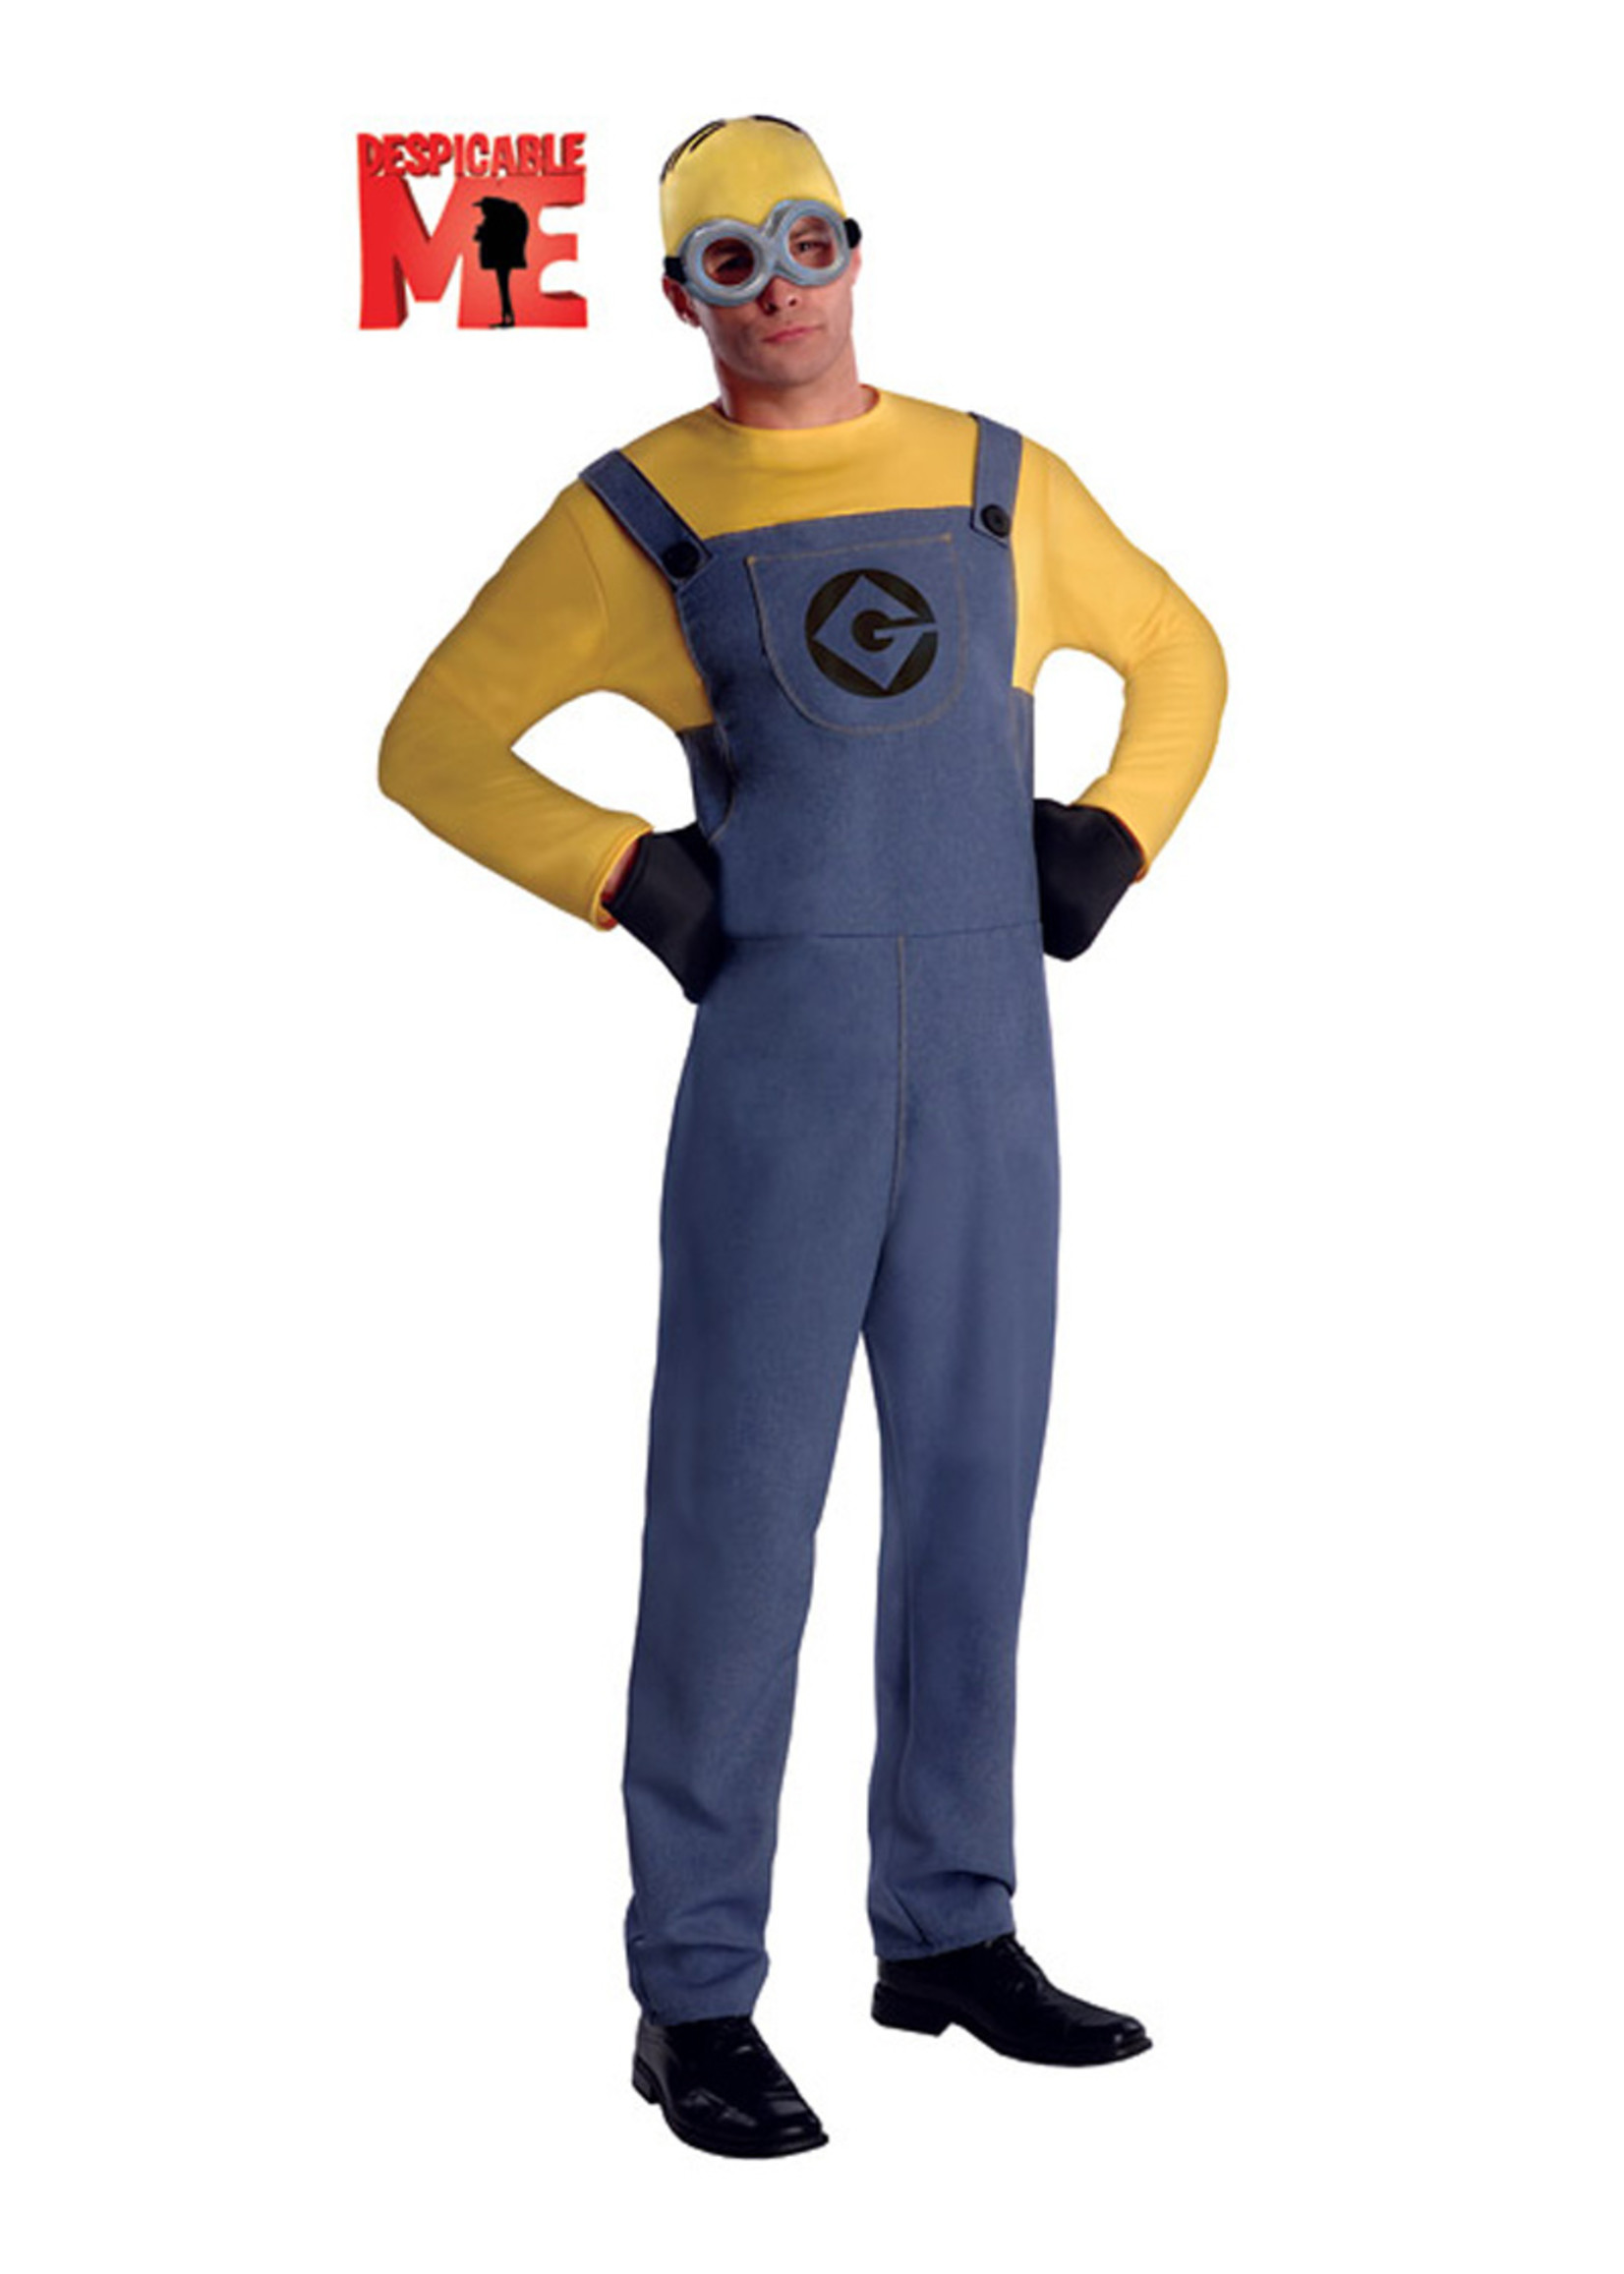 Minion Dave Costume - Men's